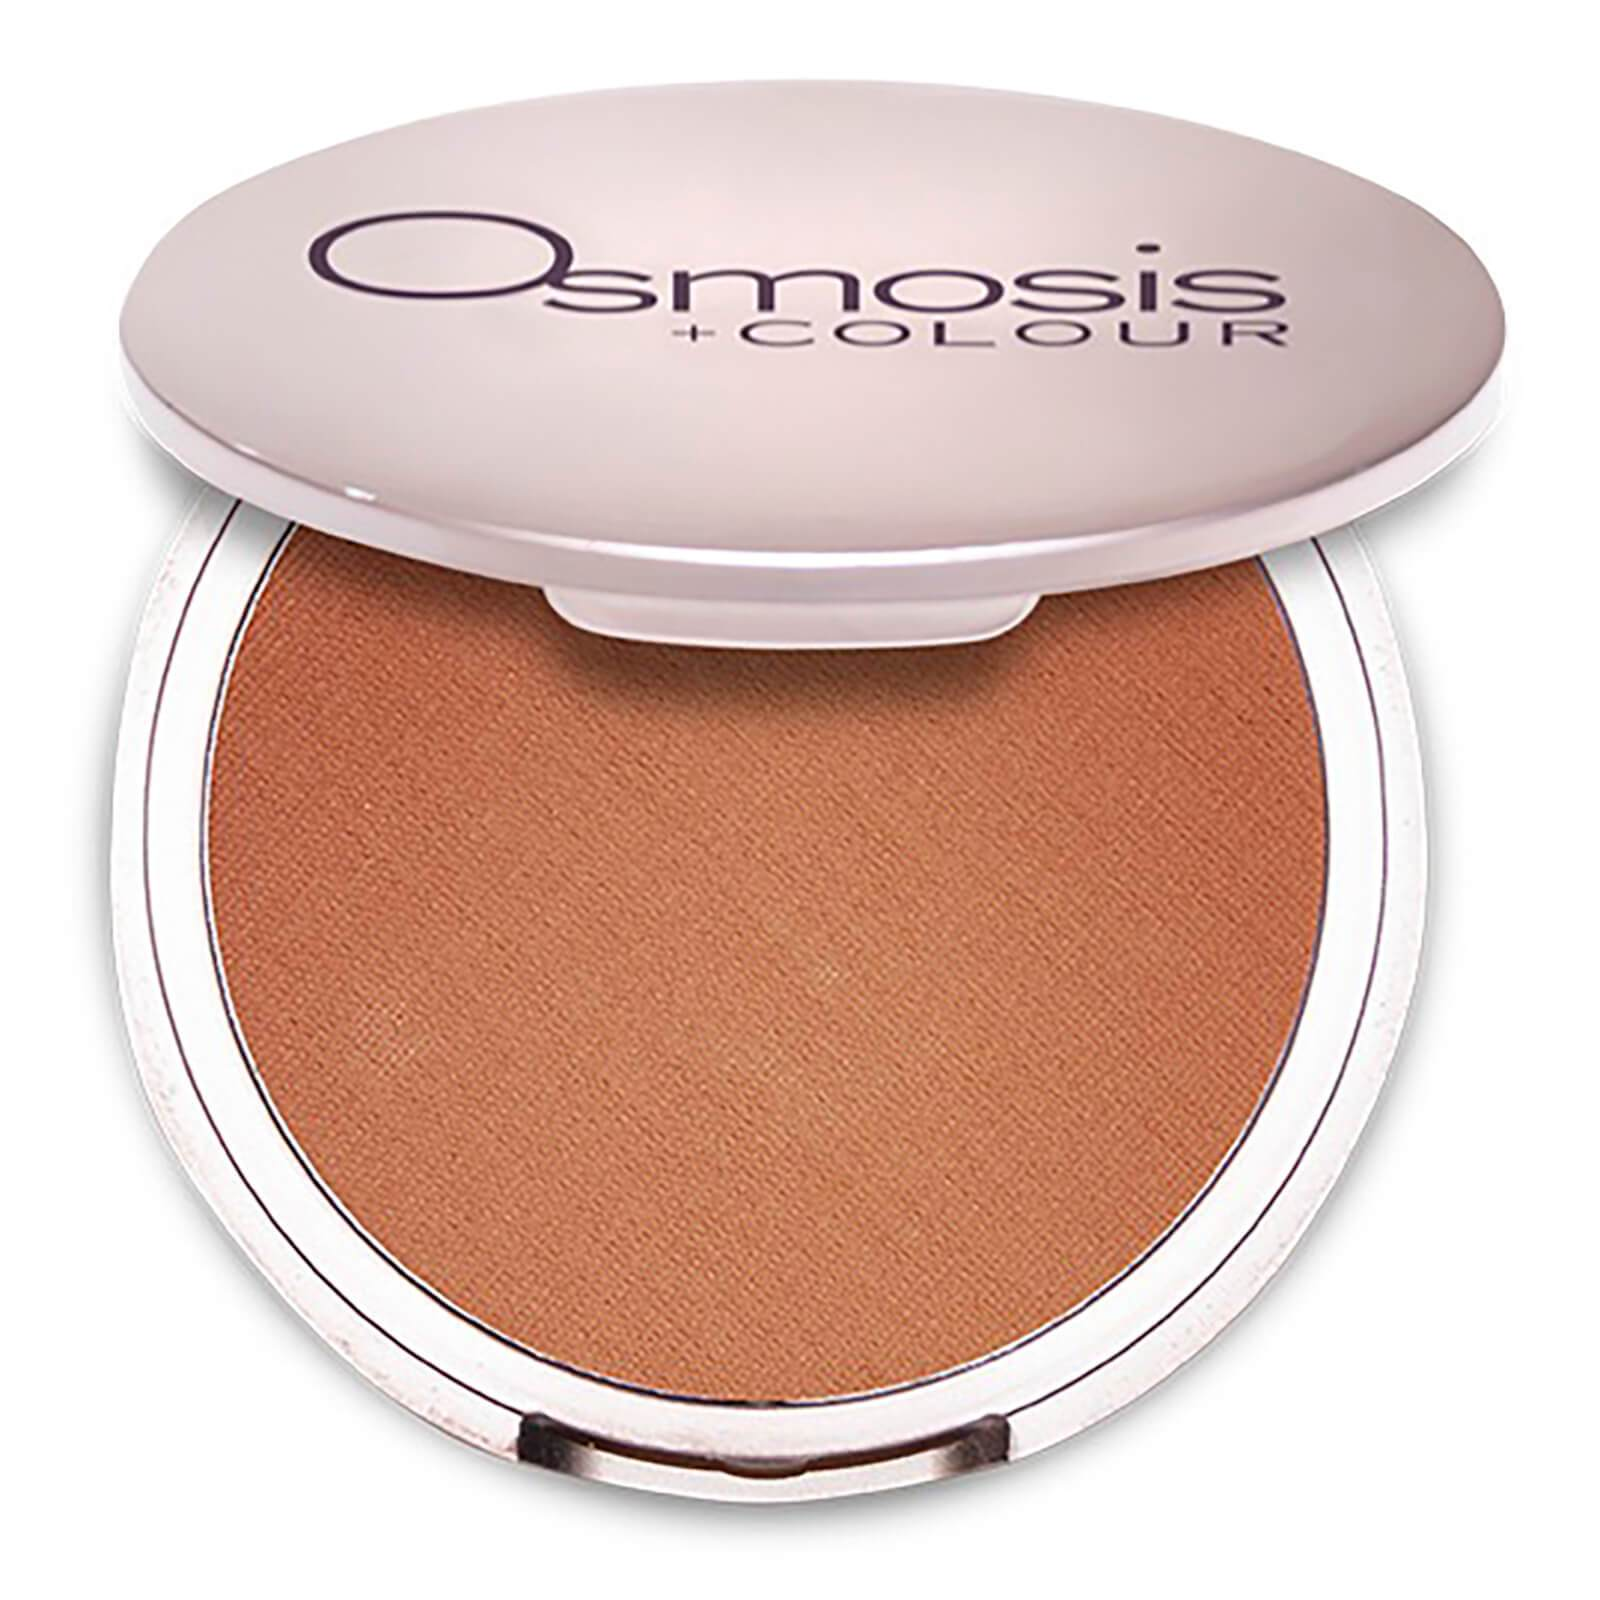 Osmosis + Colour South Beach Mineral Bronzer